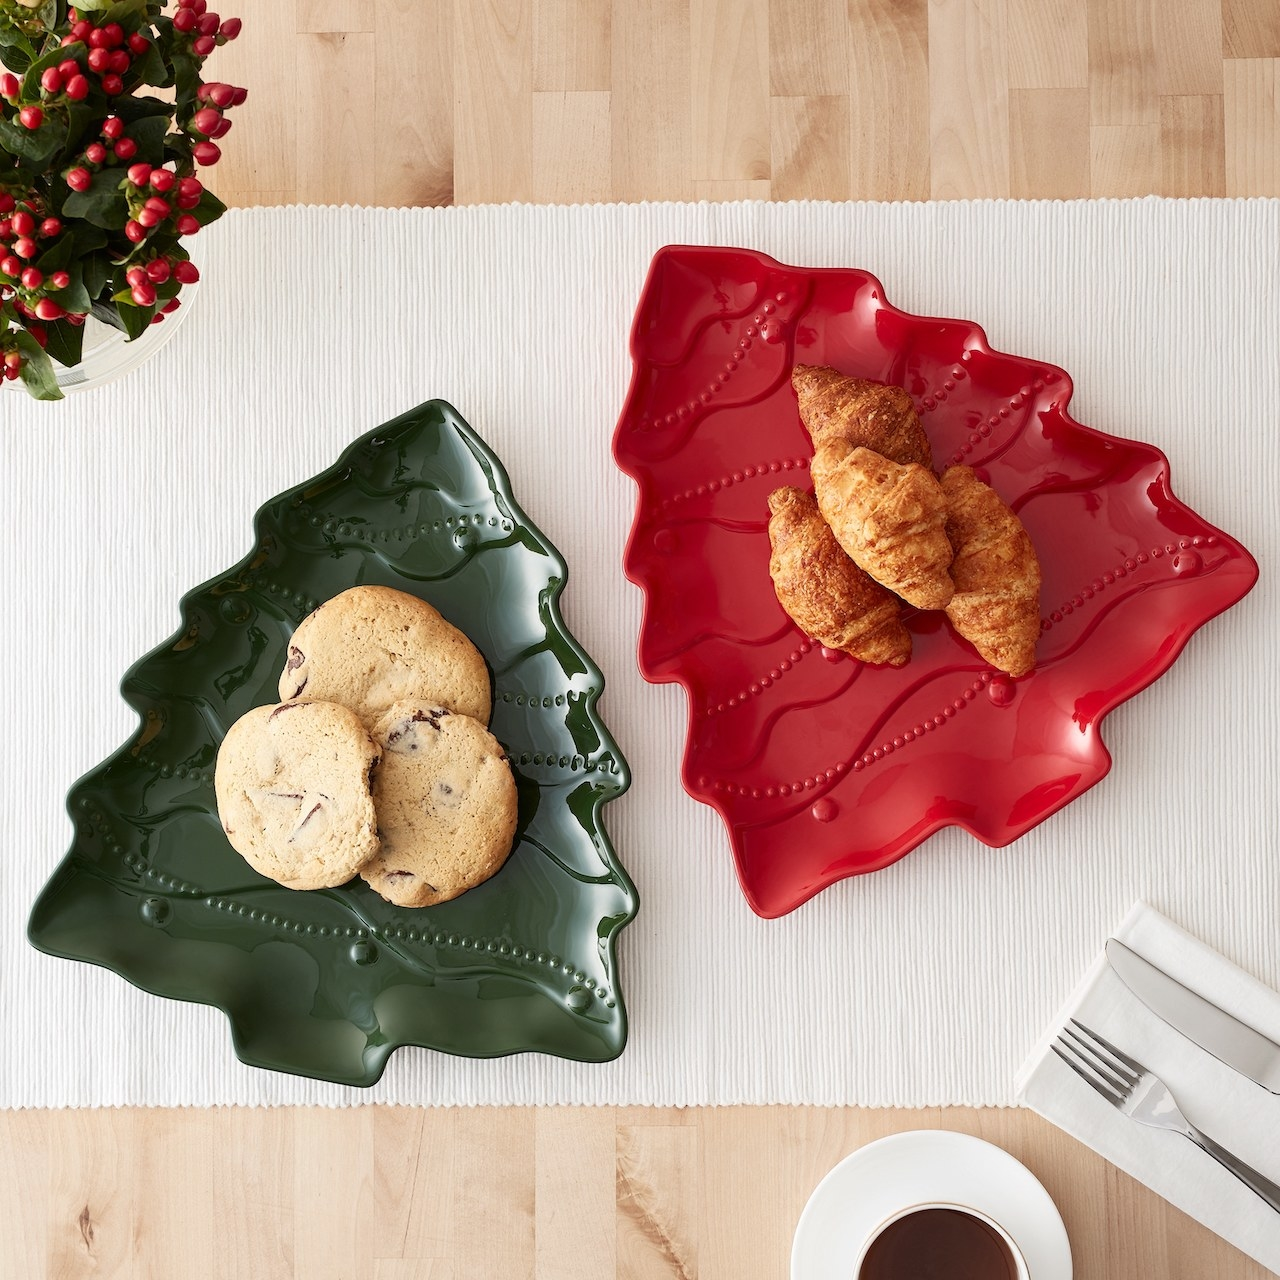 The plates with holiday cookies and treats on them